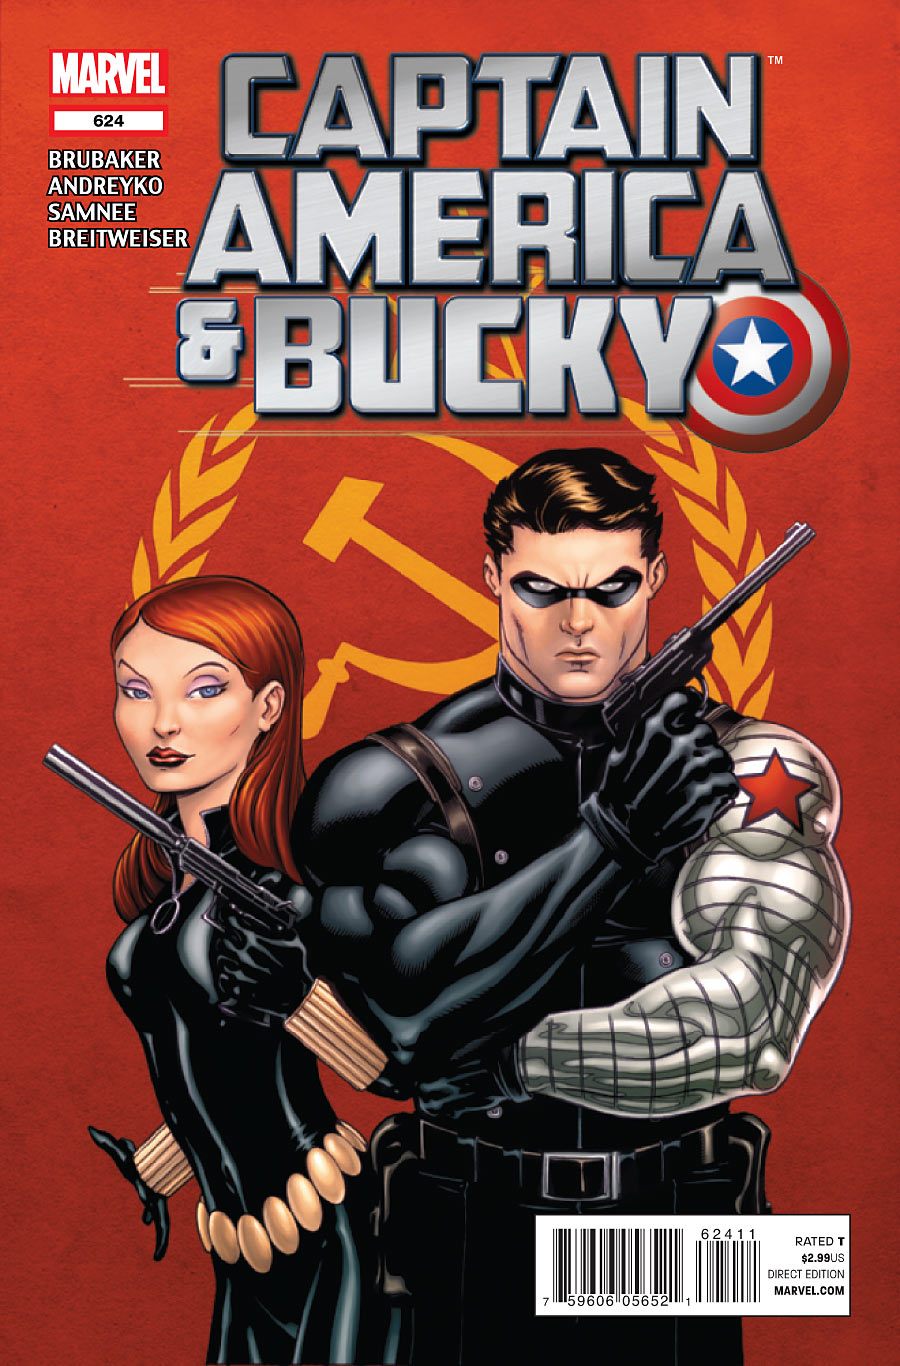 Copertina di Captain America and Bucky 624, del 2012, di Ed McGuiness e Morry Hollowell